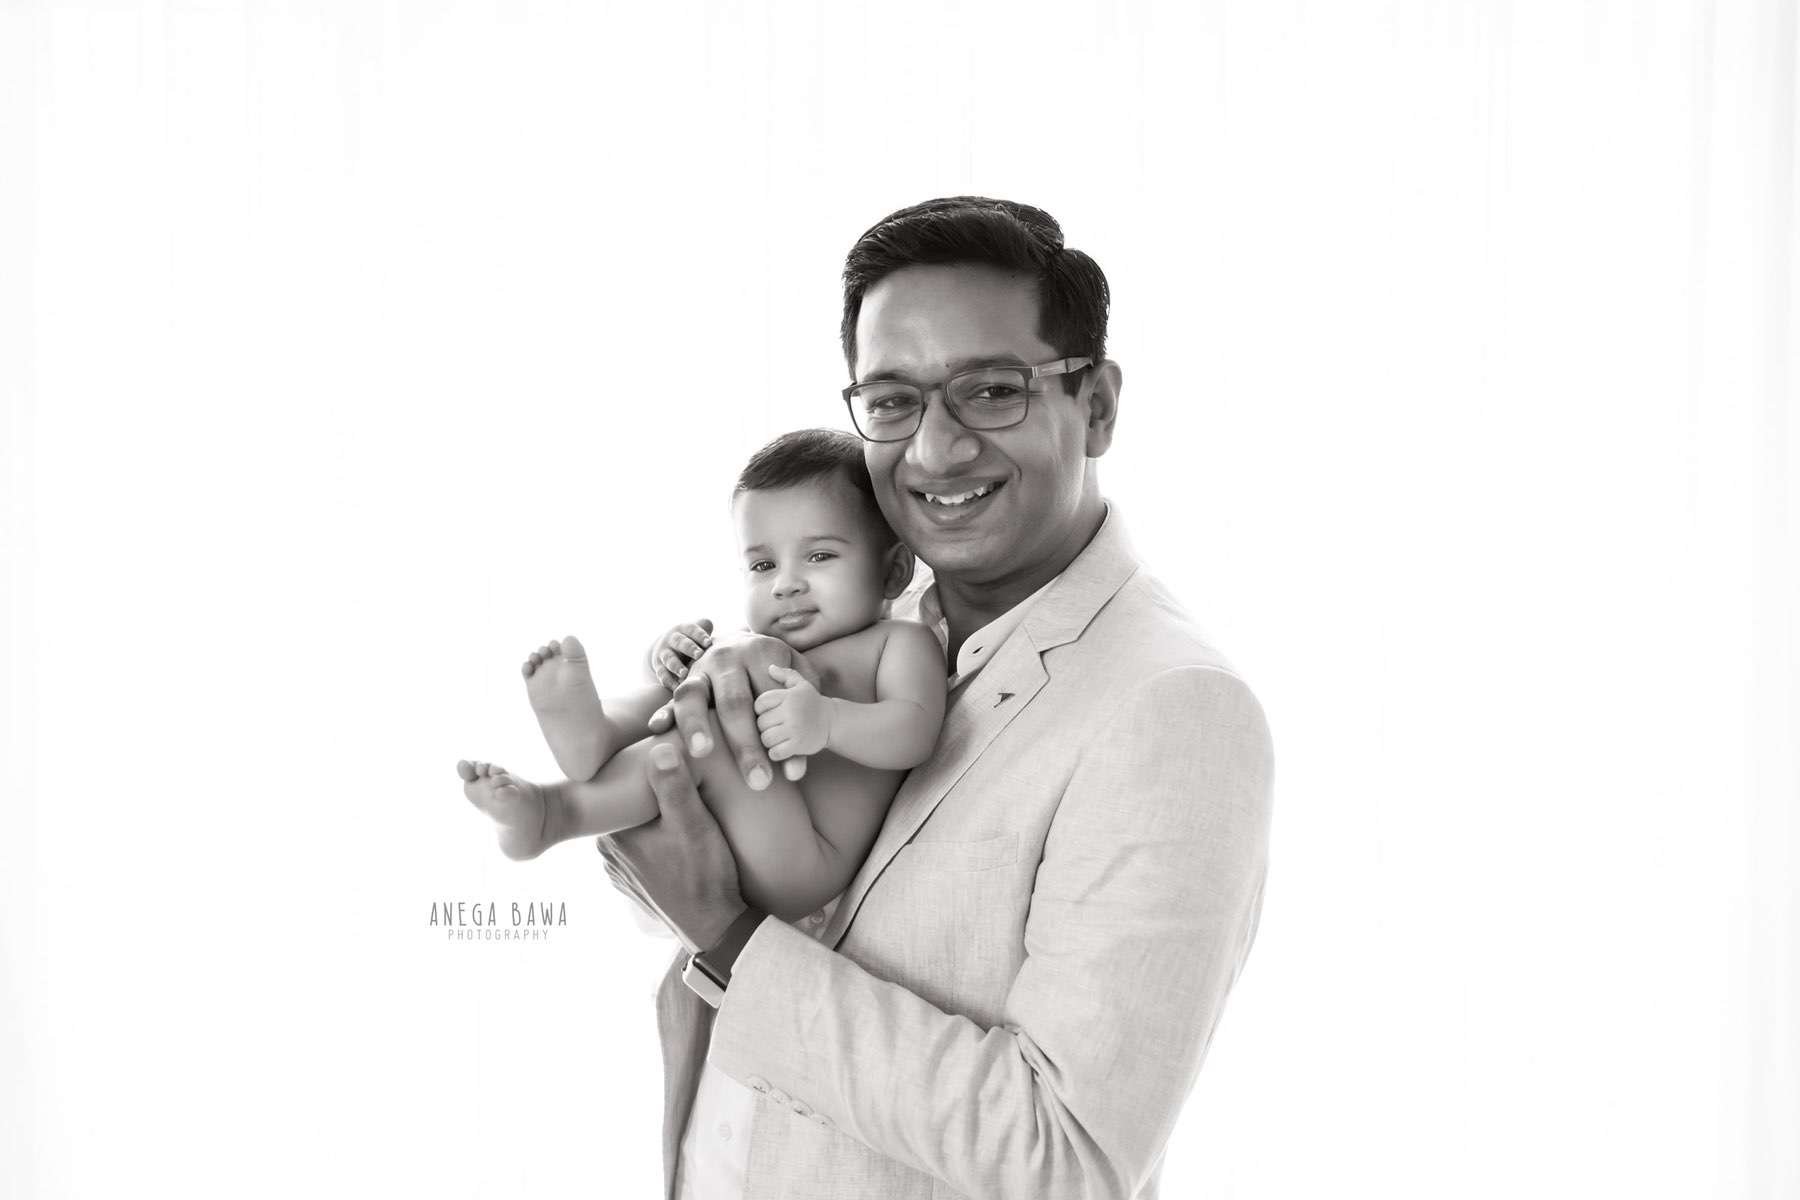 249907-black-and-white-father-and-baby-photography-delhi-4-5-6-7-months-baby-photoshoot-gurgaon-anega-bawa